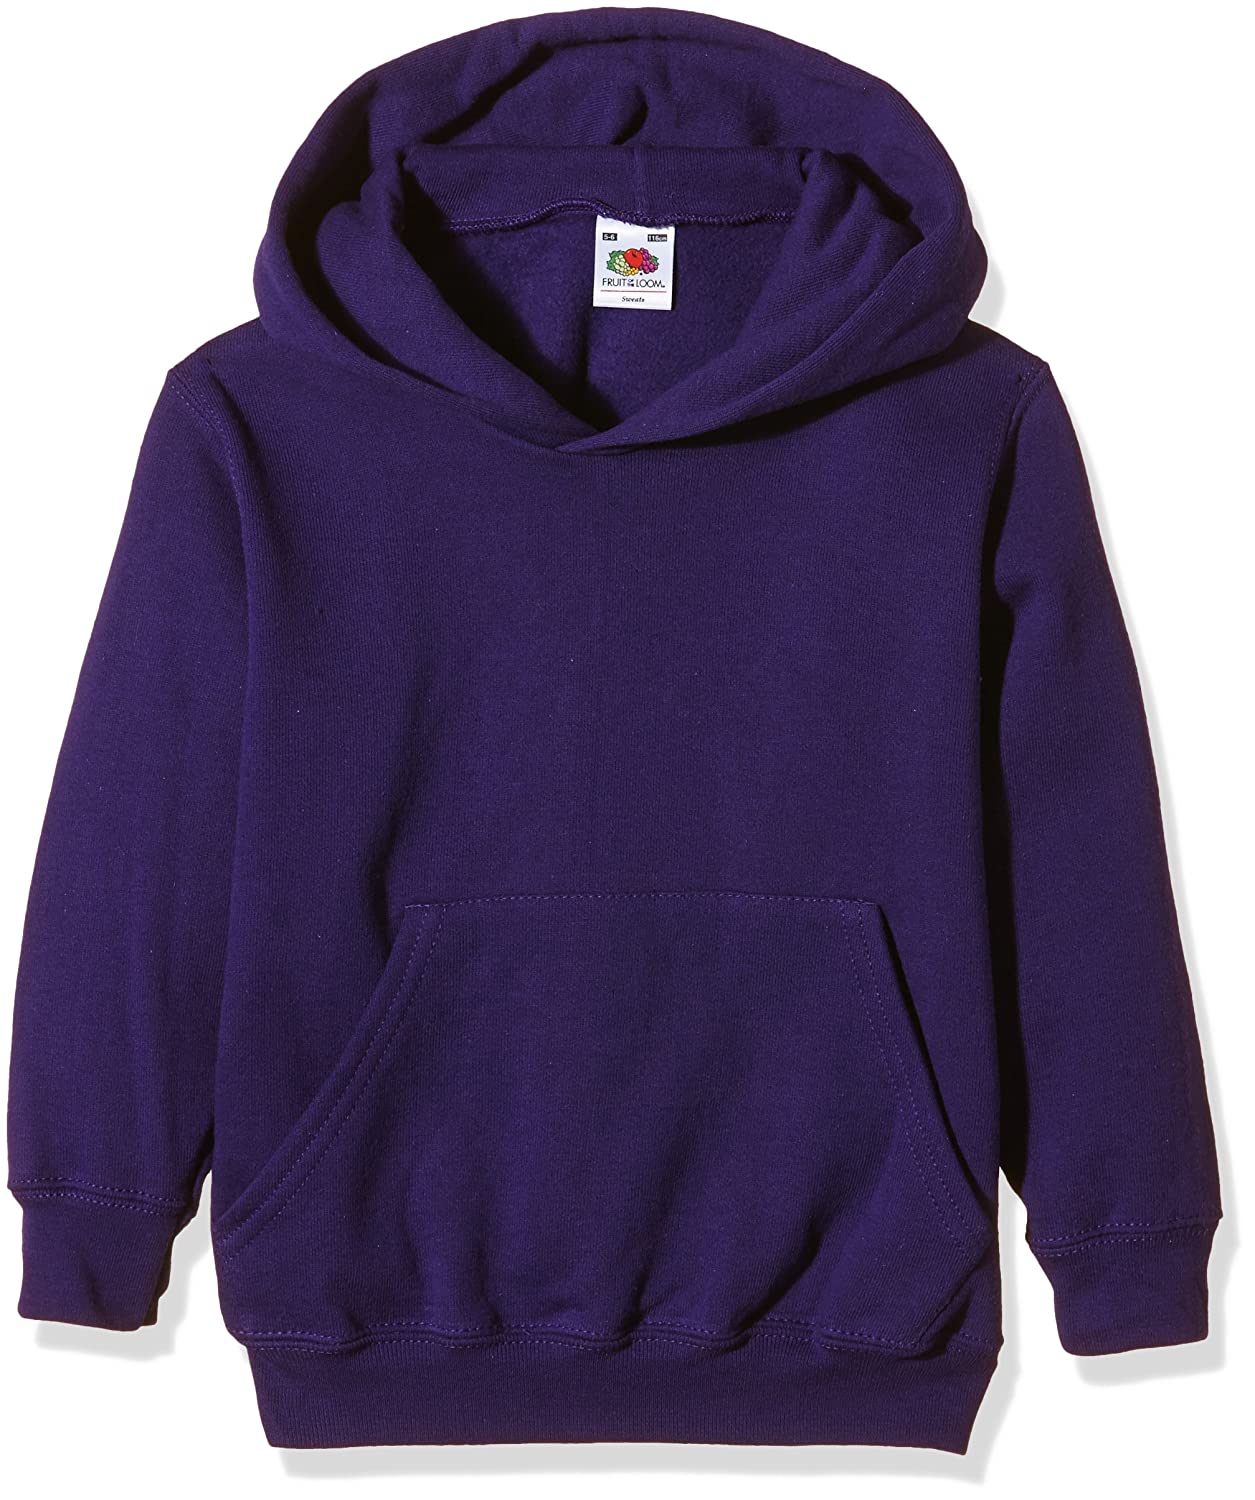 Fruit of the Loom Childrens Hooded Sweatshirt Hoodie (AGE 7/8, PURPLE) 62-043-0